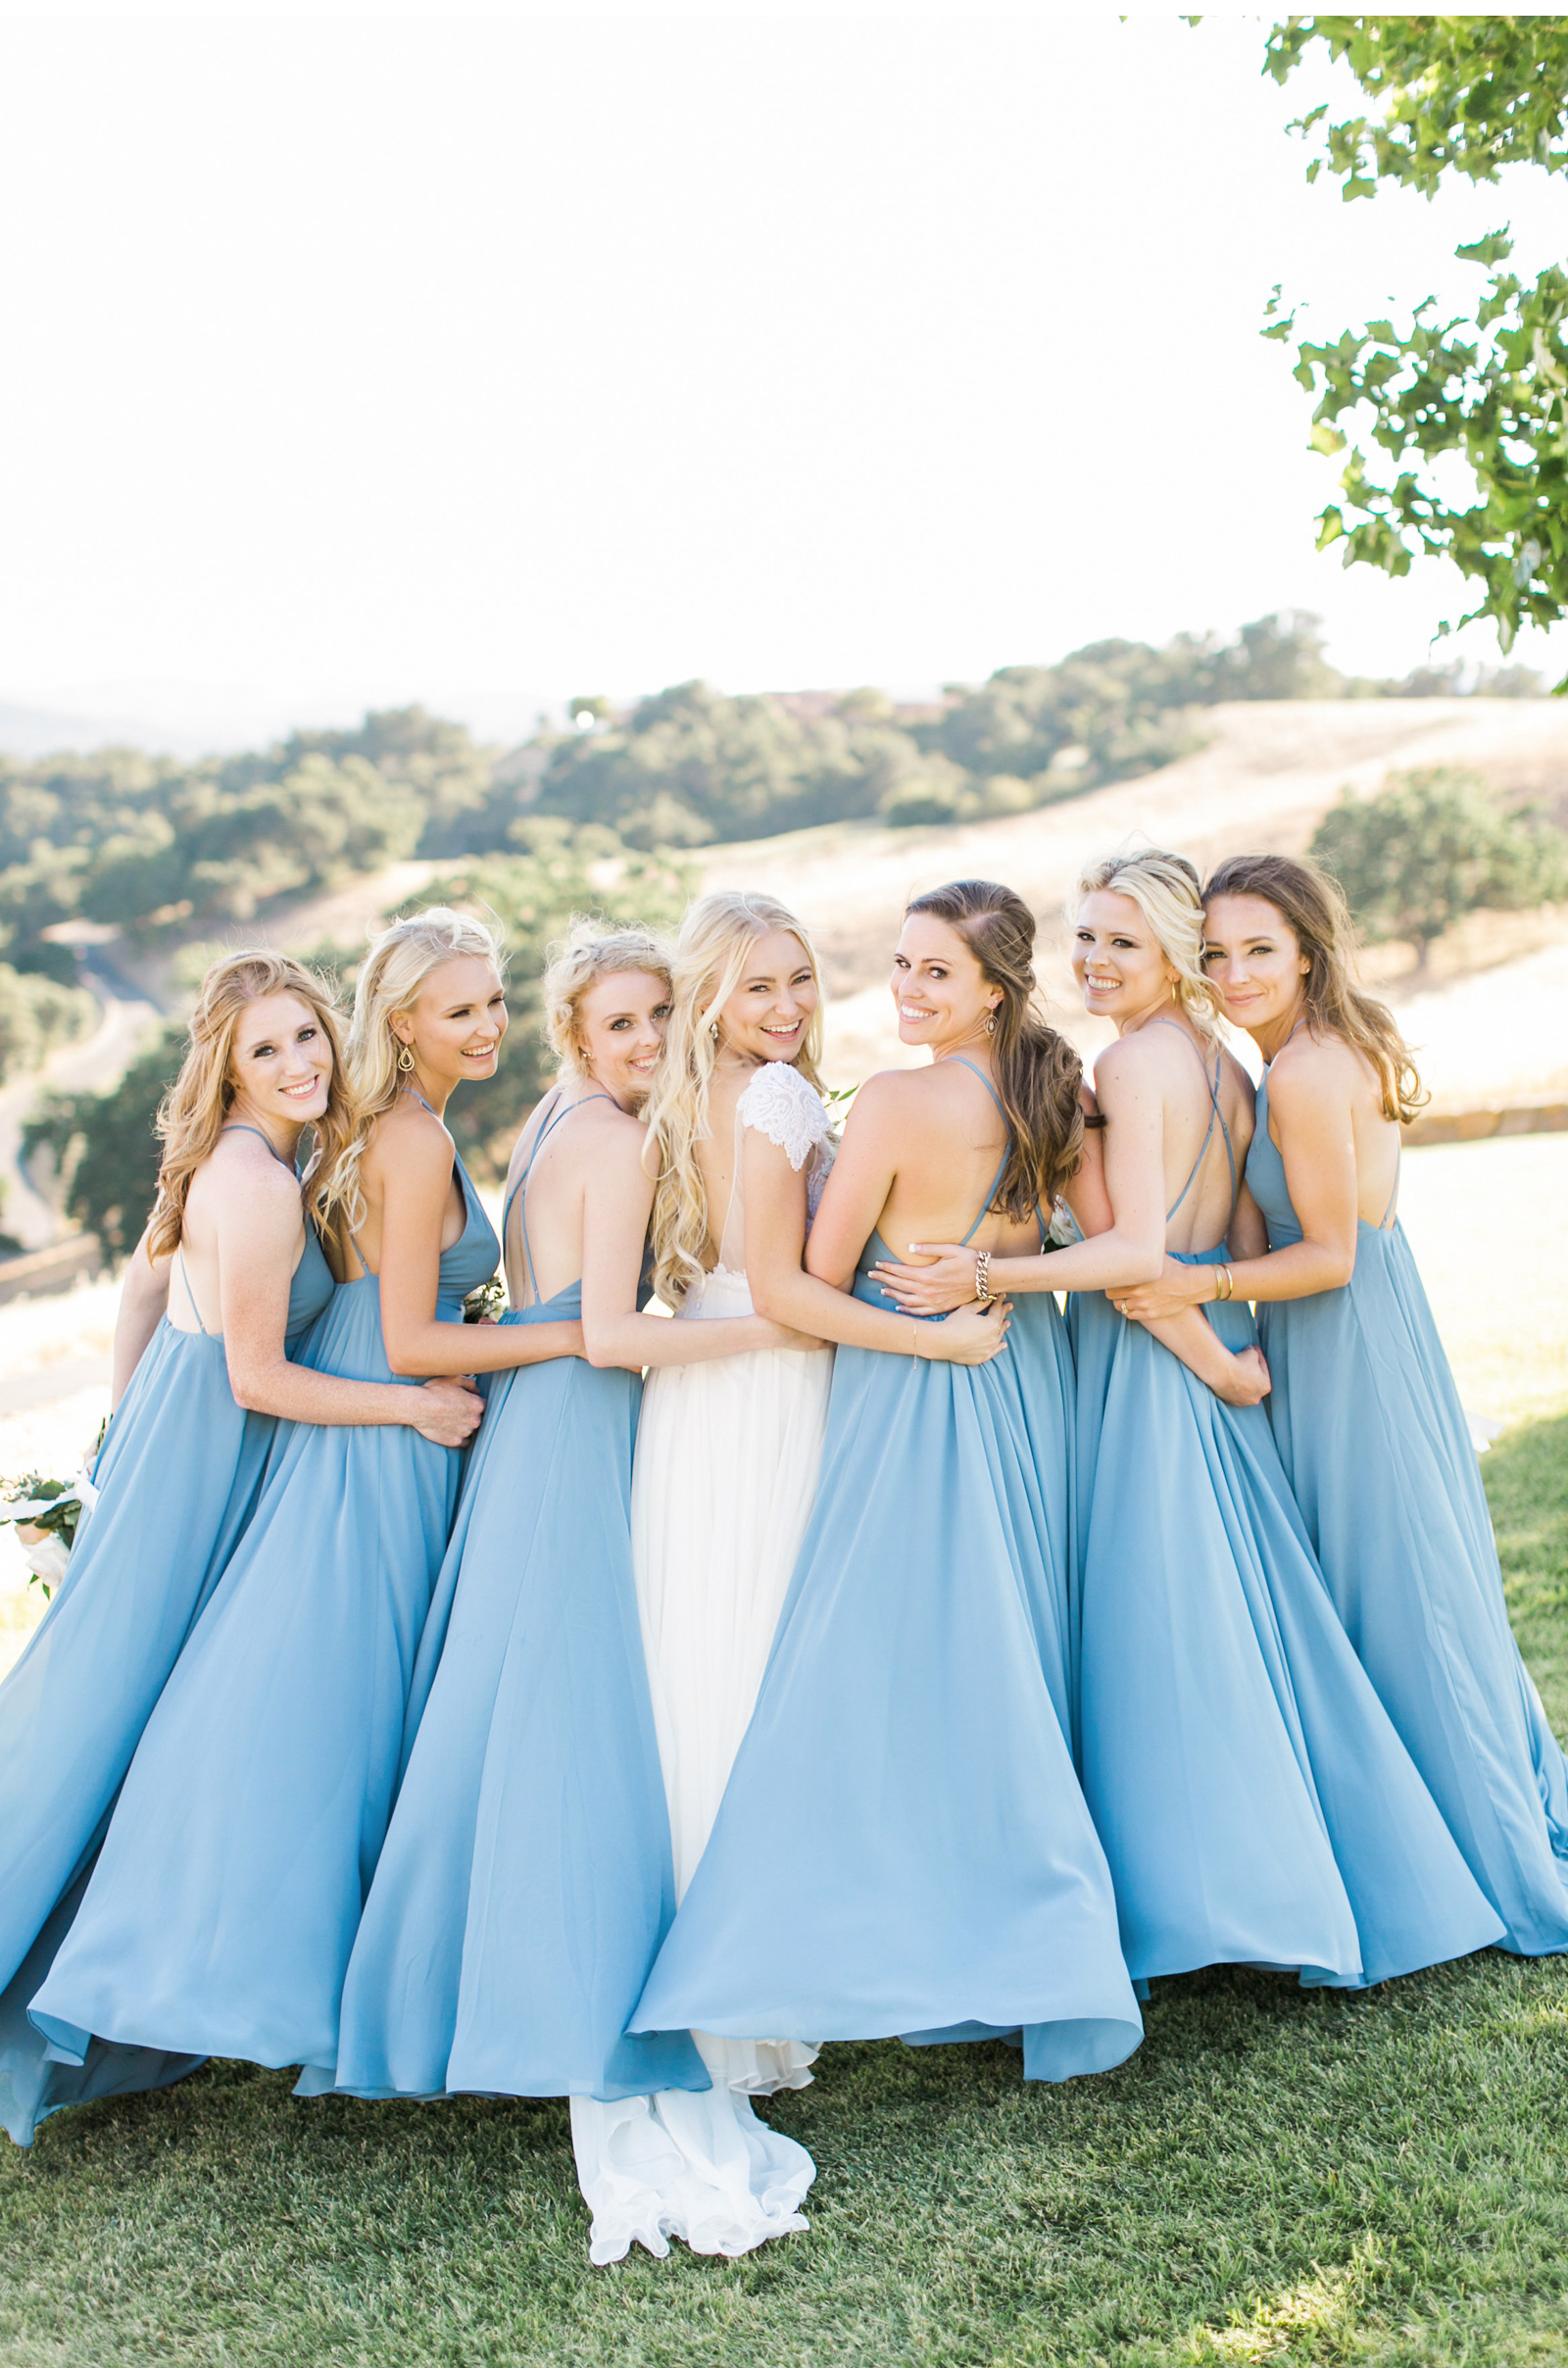 Paso-Robles-Style-Me-Pretty-The-Knot-Wedding-Natalie-Schutt-Photography's-Wedding_06.jpg